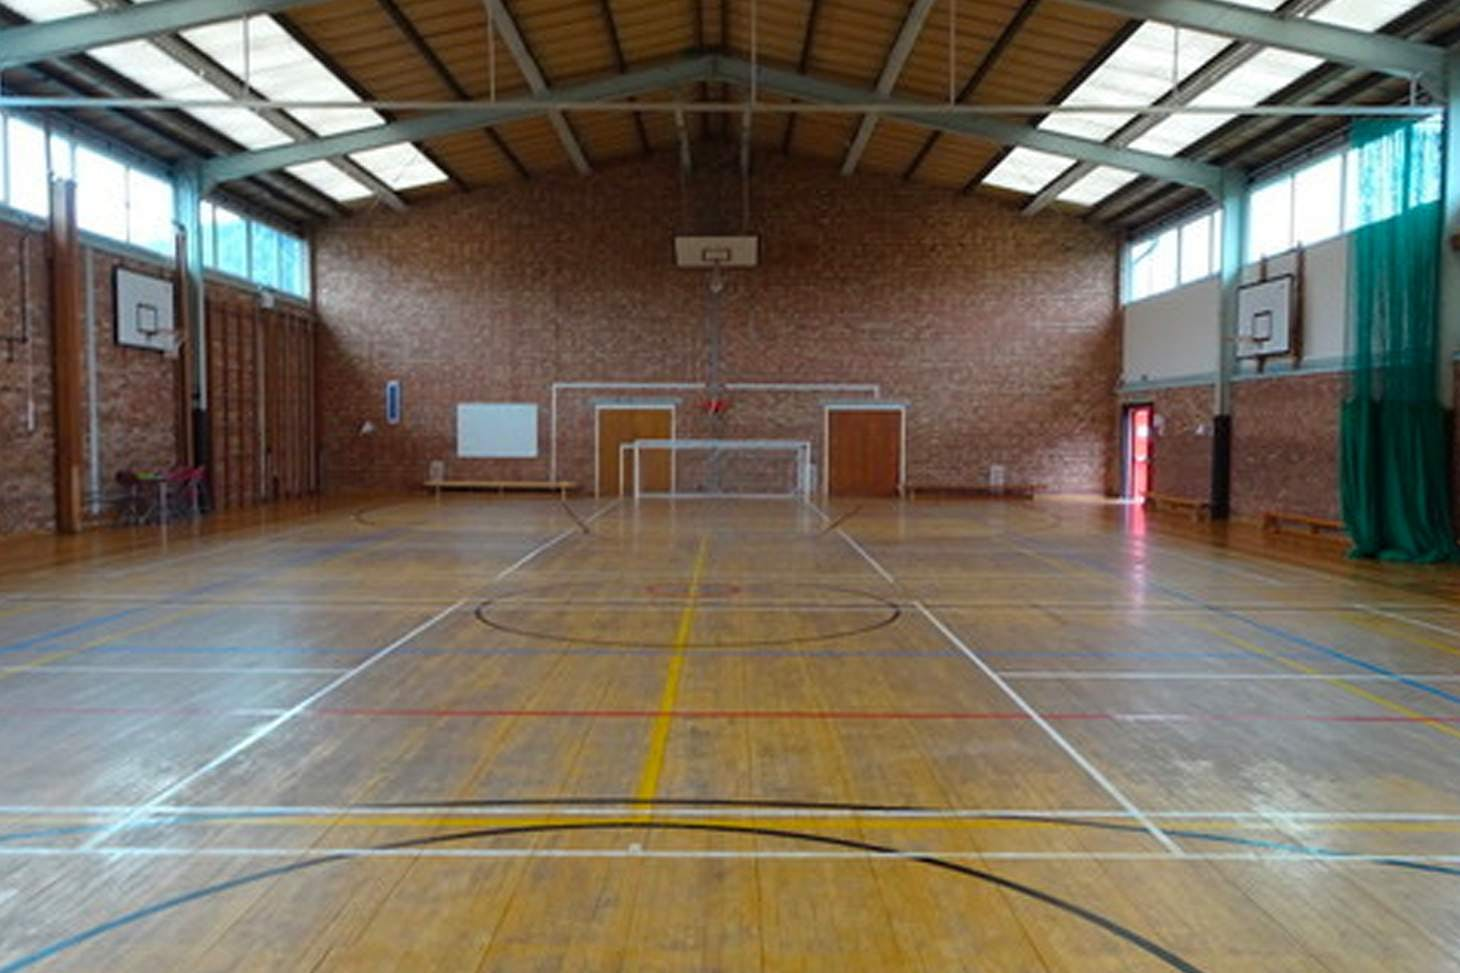 Trevelyan Middle School Court | Sports hall badminton court